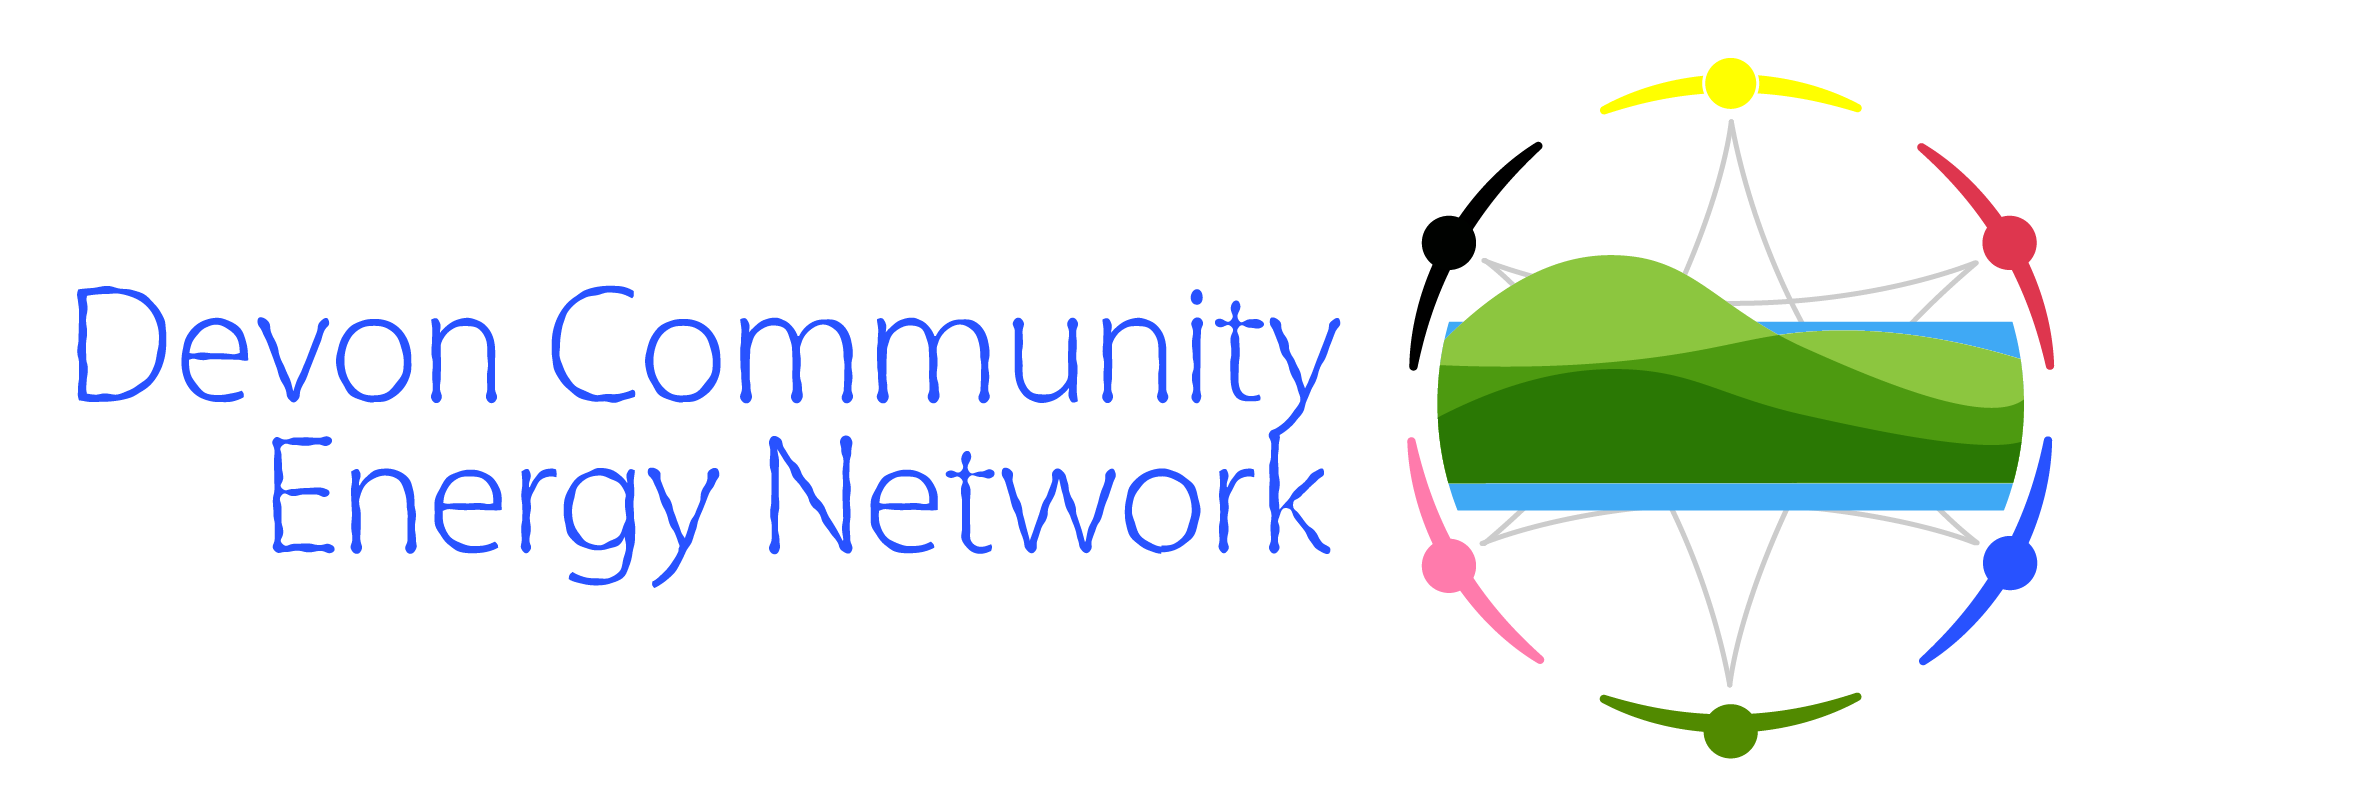 Devon Community Energy Network